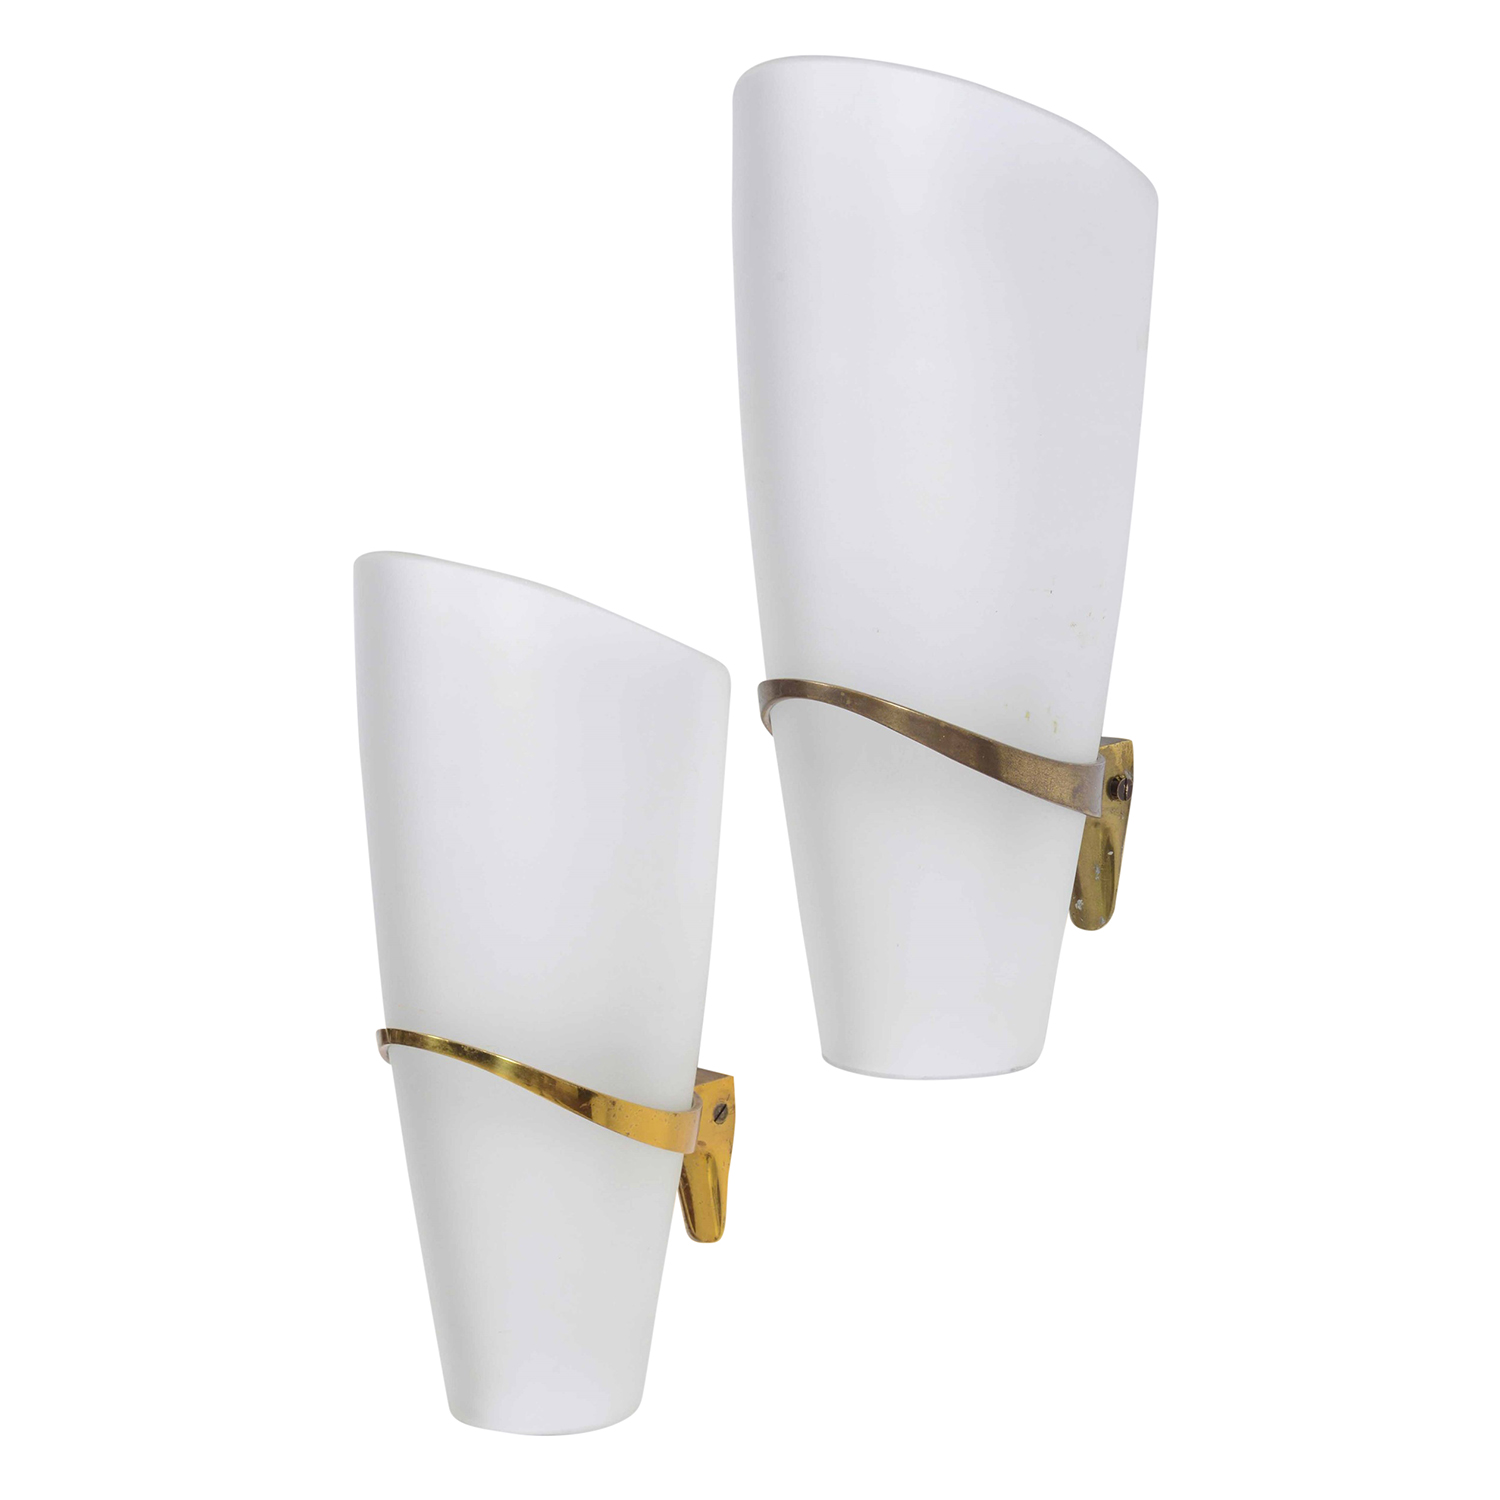 20th Century Italian Fontana Arte Pair of Brass Wall Sconces by Max Ingrand